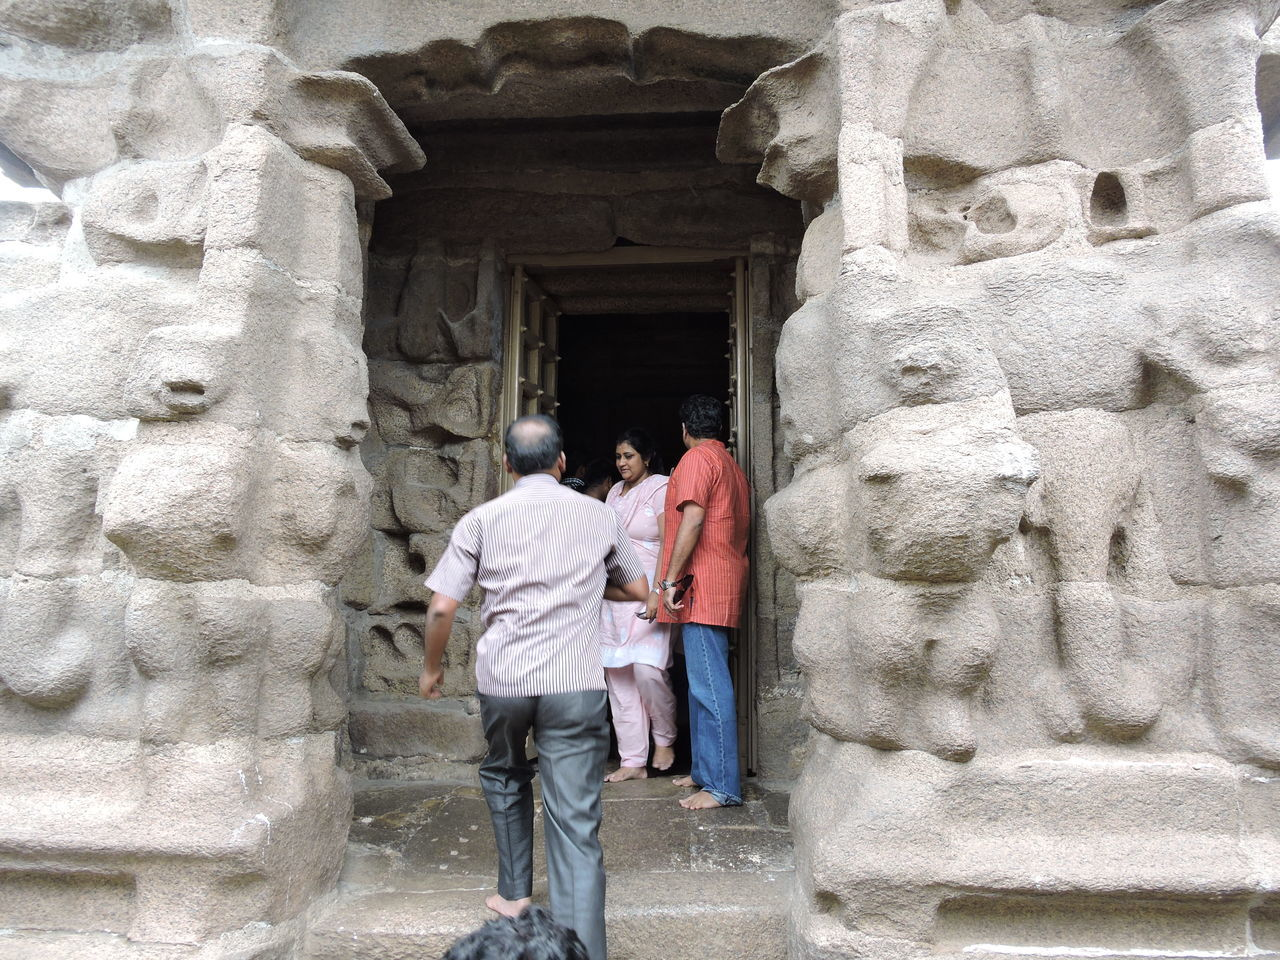 ancient, architecture, built structure, history, old ruin, men, archaeology, ancient civilization, carving - craft product, travel destinations, travel, rock - object, statue, real people, sculpture, building exterior, day, rear view, bas relief, outdoors, vacations, two people, women, full length, adult, people, sky, adults only